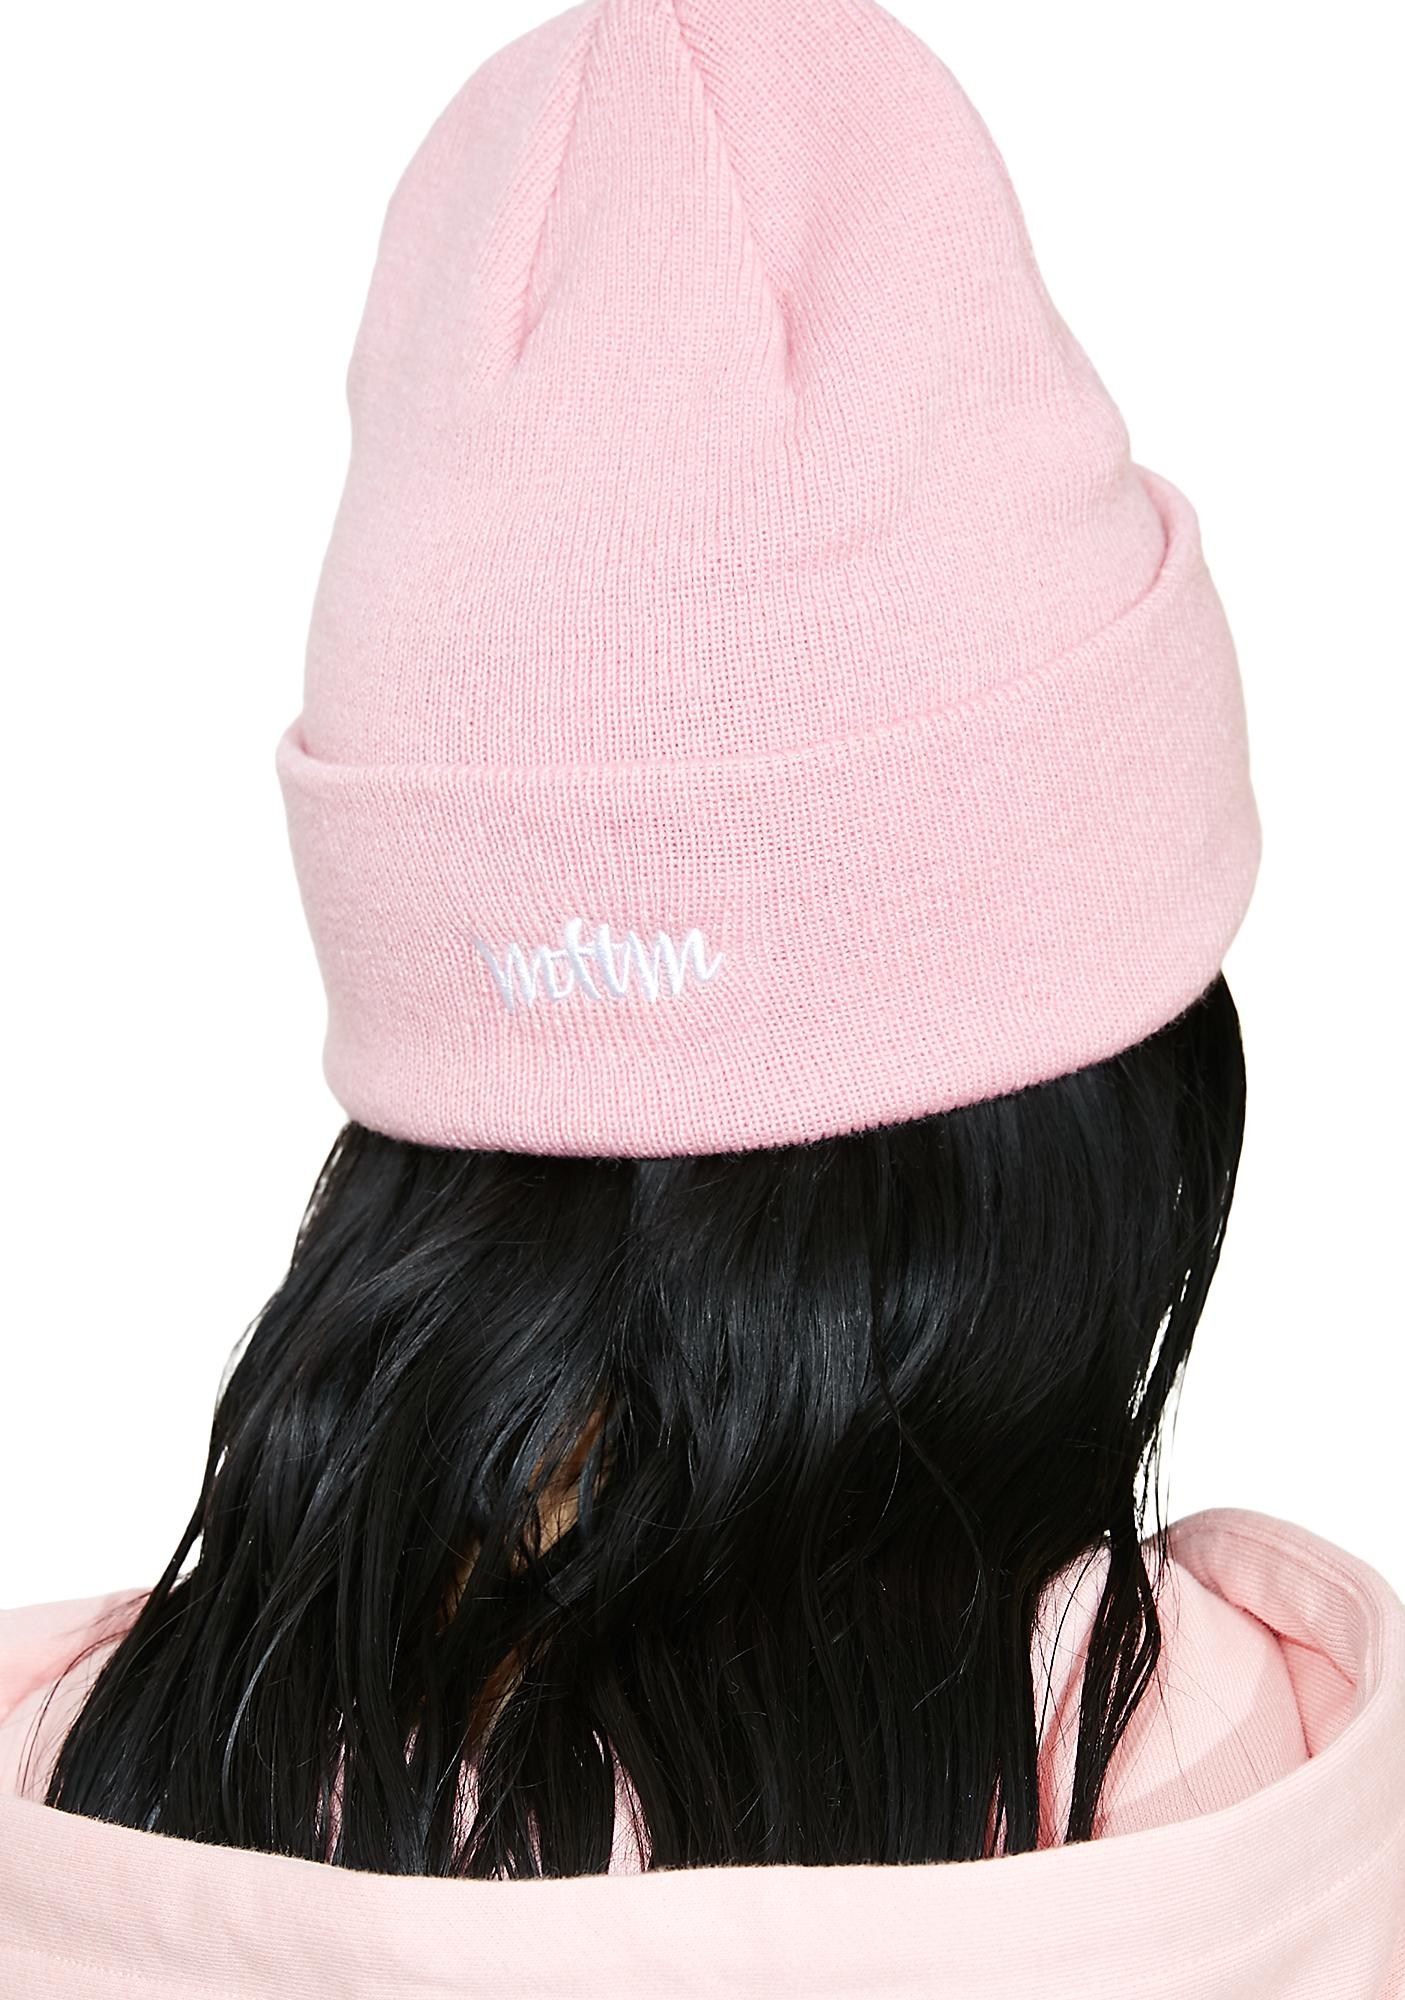 Married to the Mob x Penthouse Logo Beanie